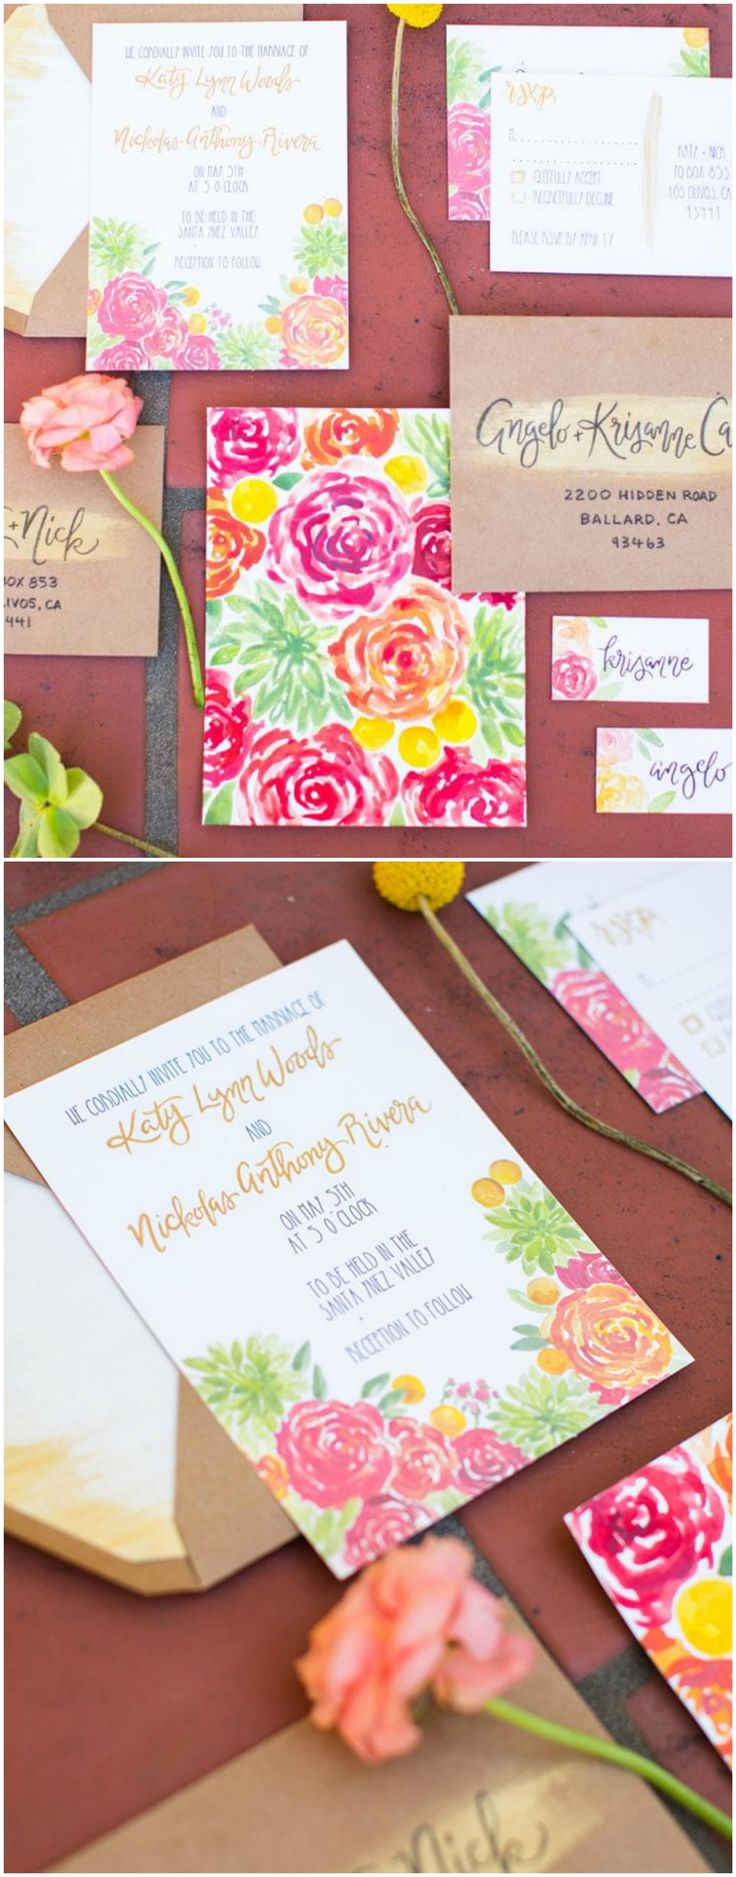 indian wedding invitations california%0A The Smarter Way to Wed  Wedding Invitation